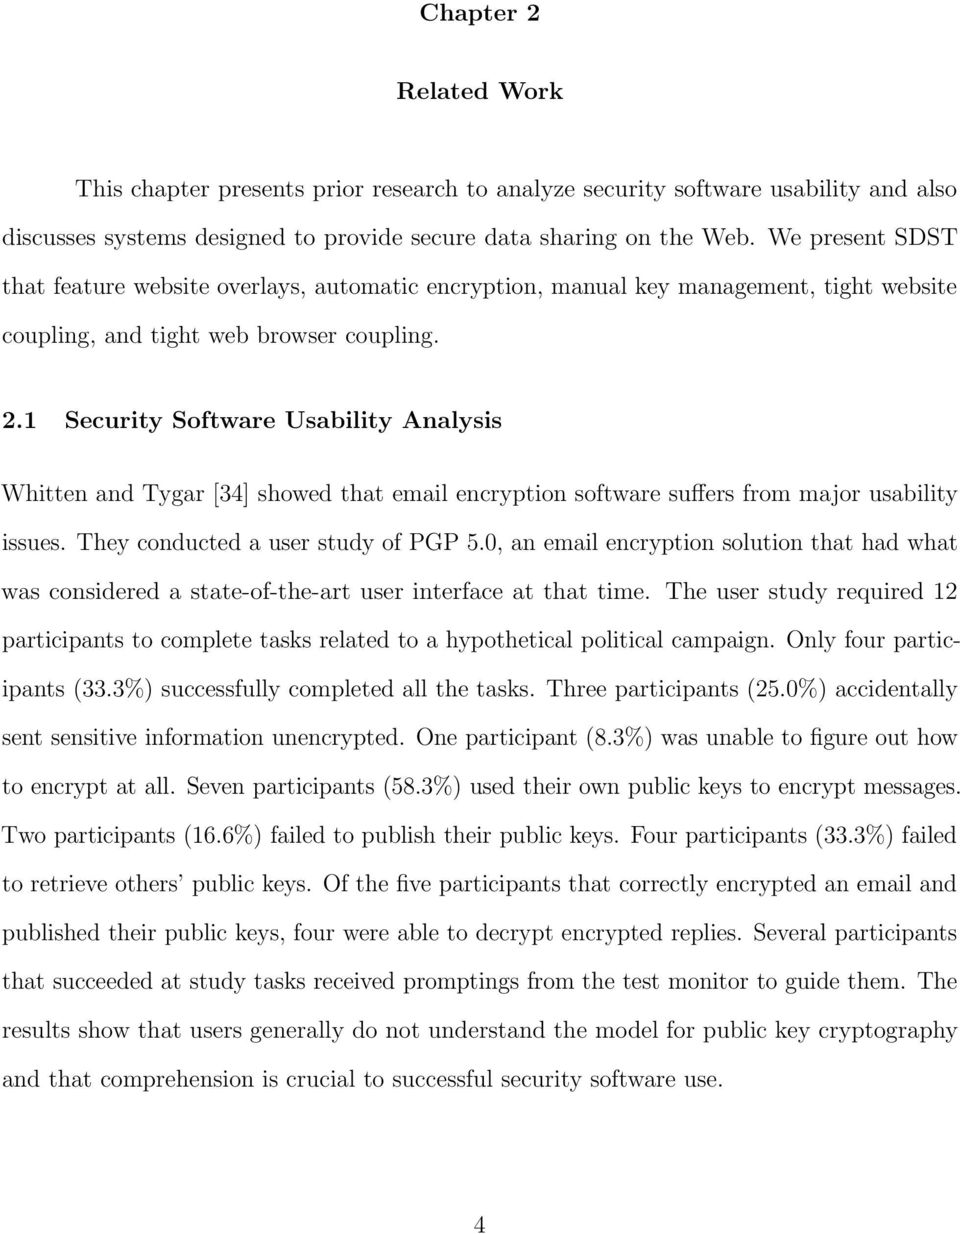 1 Security Software Usability Analysis Whitten and Tygar [34] showed that email encryption software suffers from major usability issues. They conducted a user study of PGP 5.